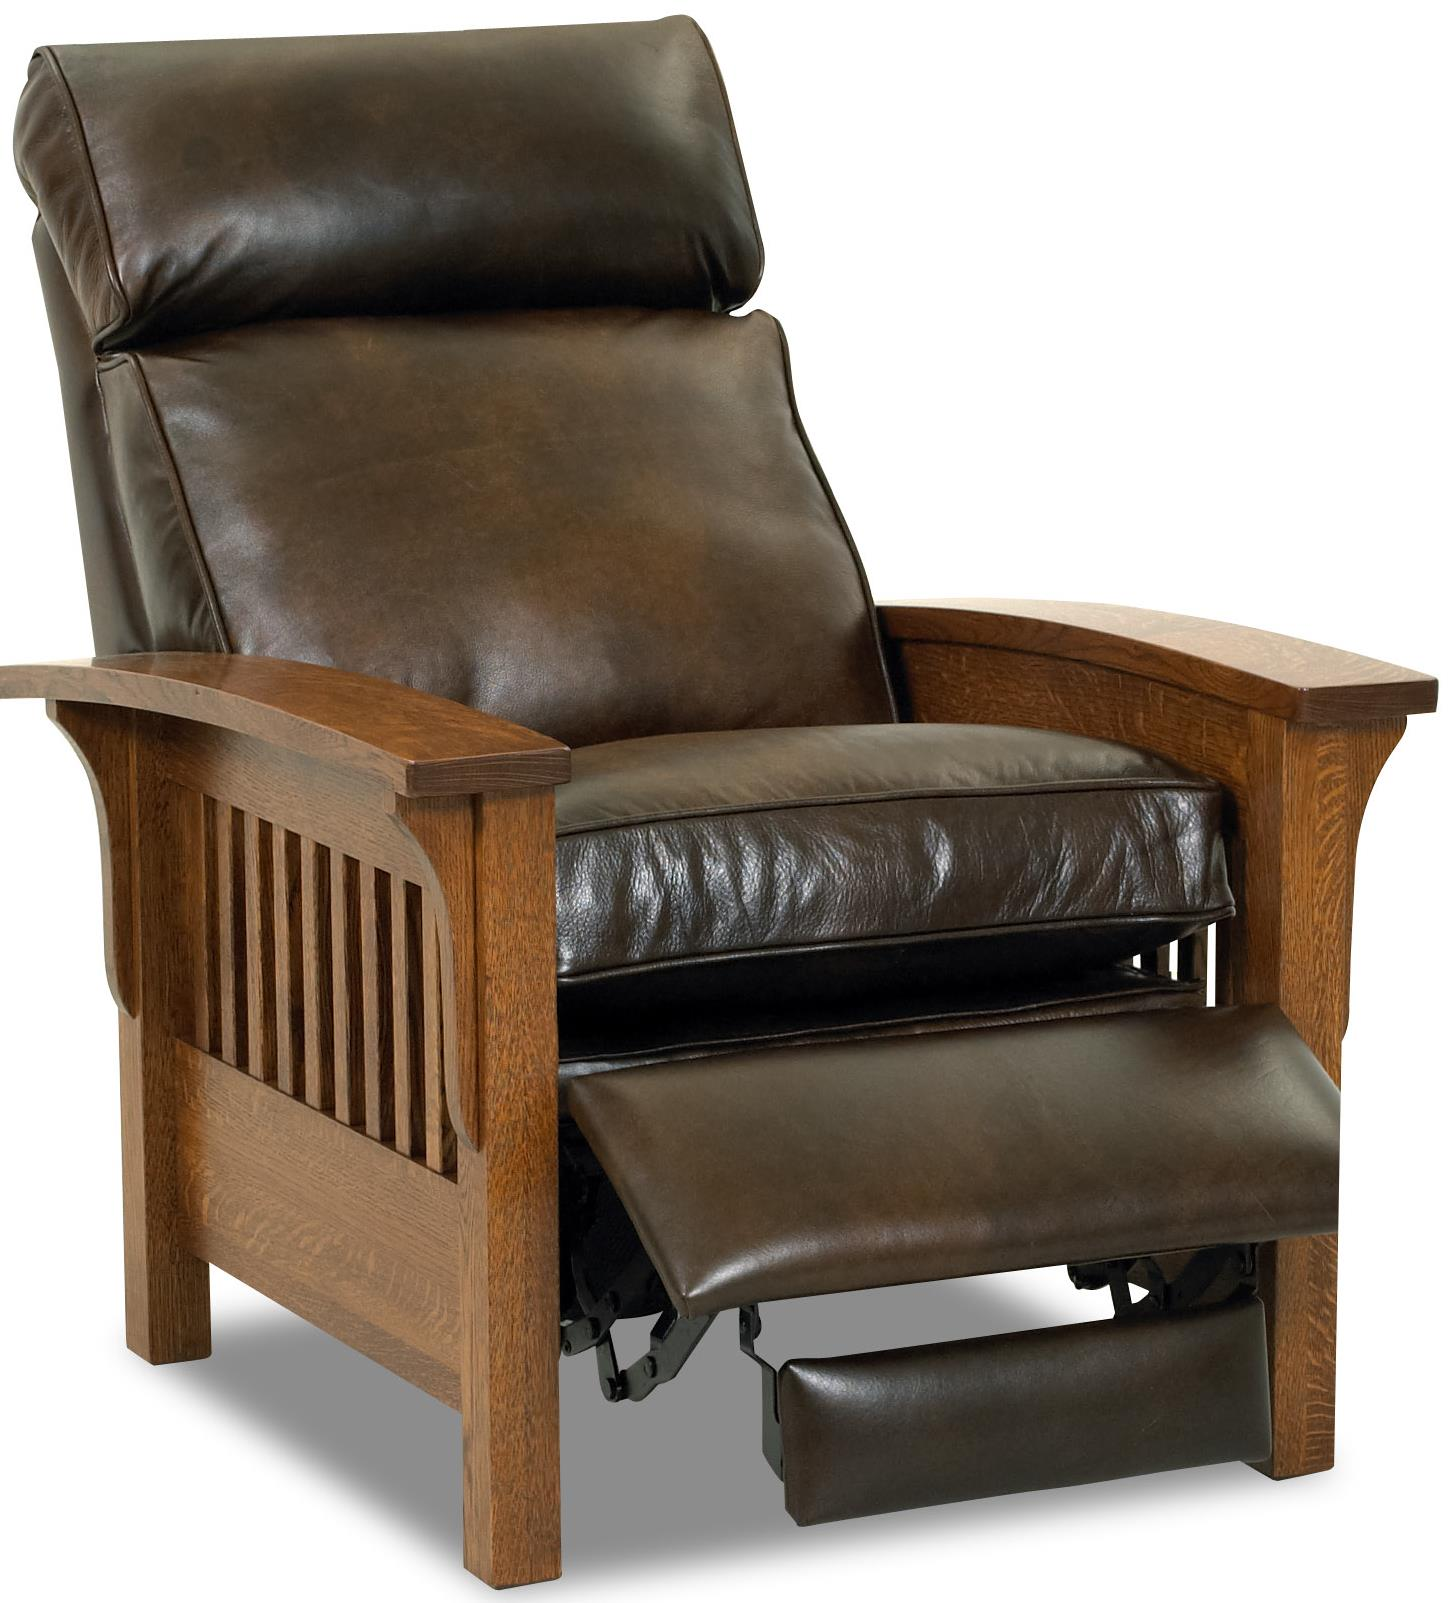 Mission Recliner Chair Comfort Design Mission High Leg Leather Recliner With Down